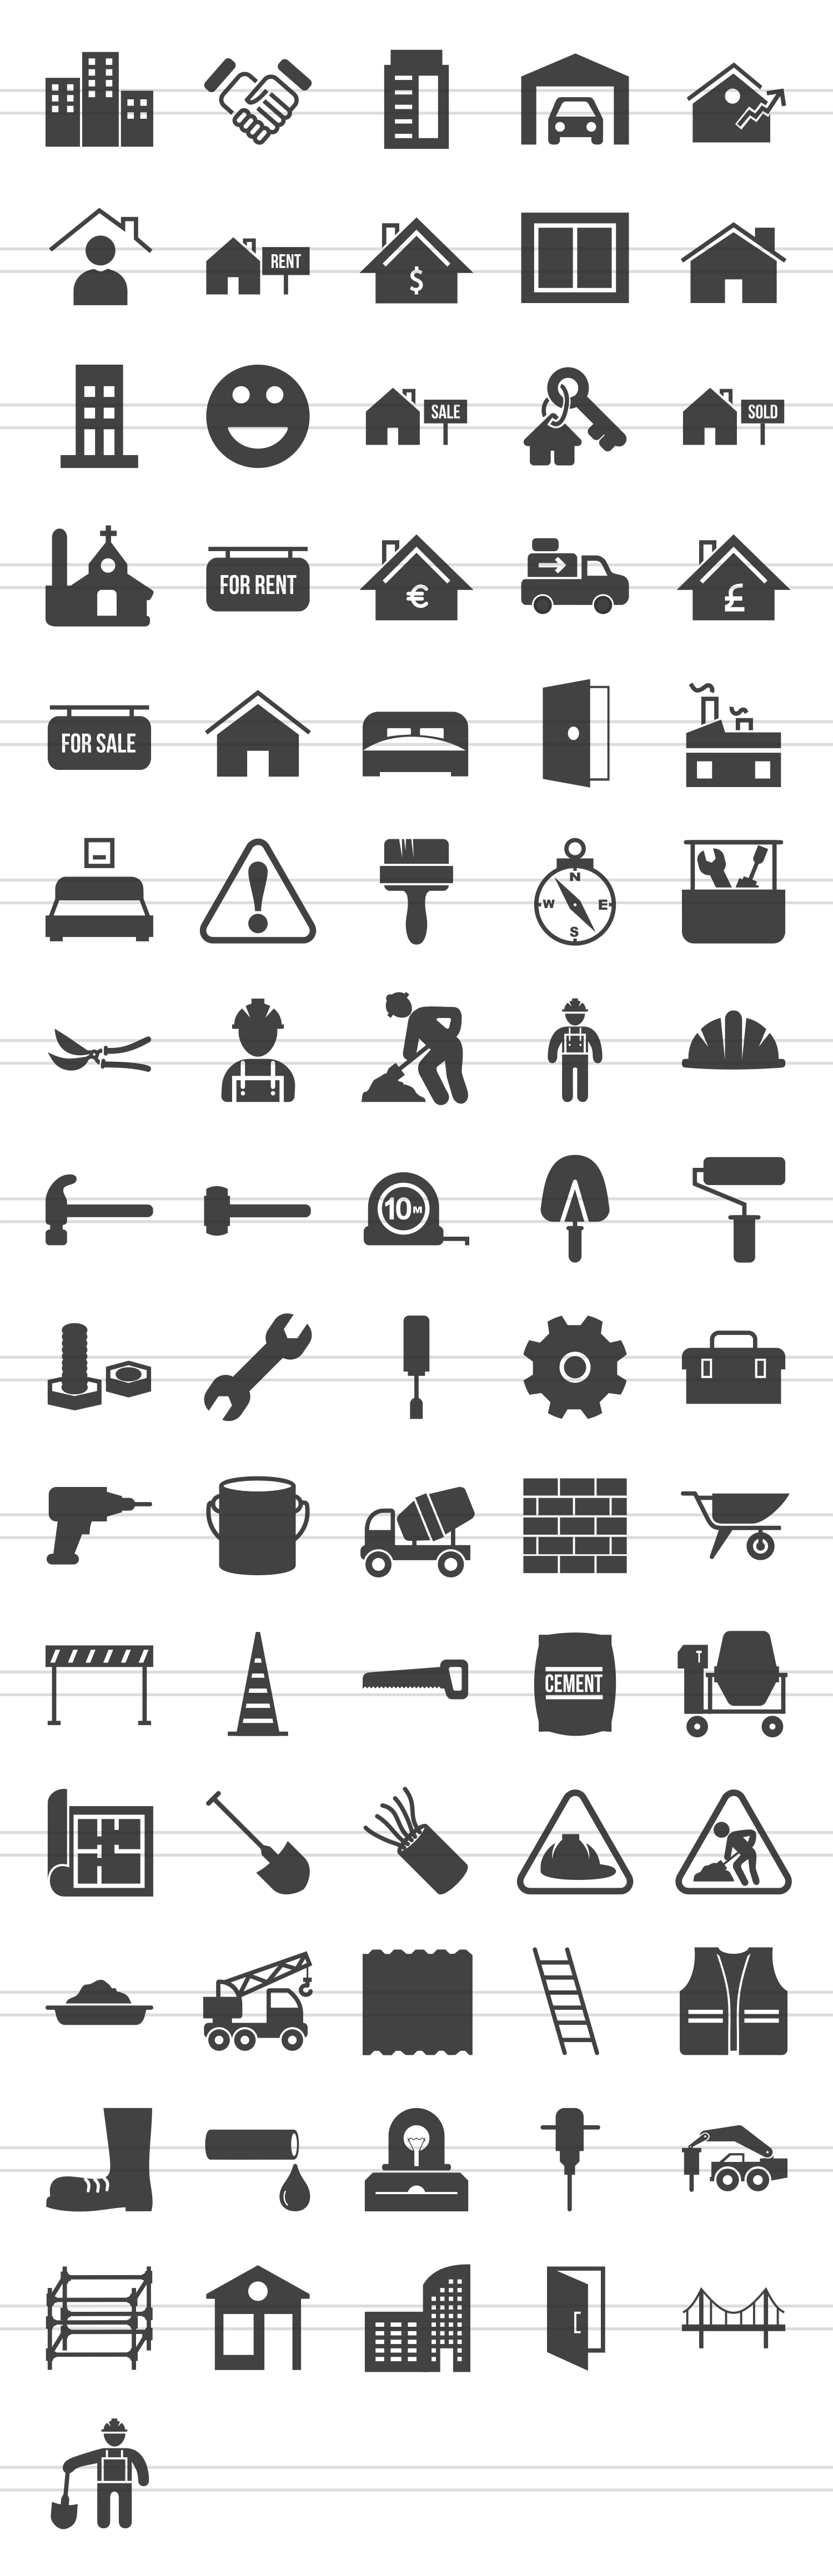 76 Construction Glyph Icons example image 2